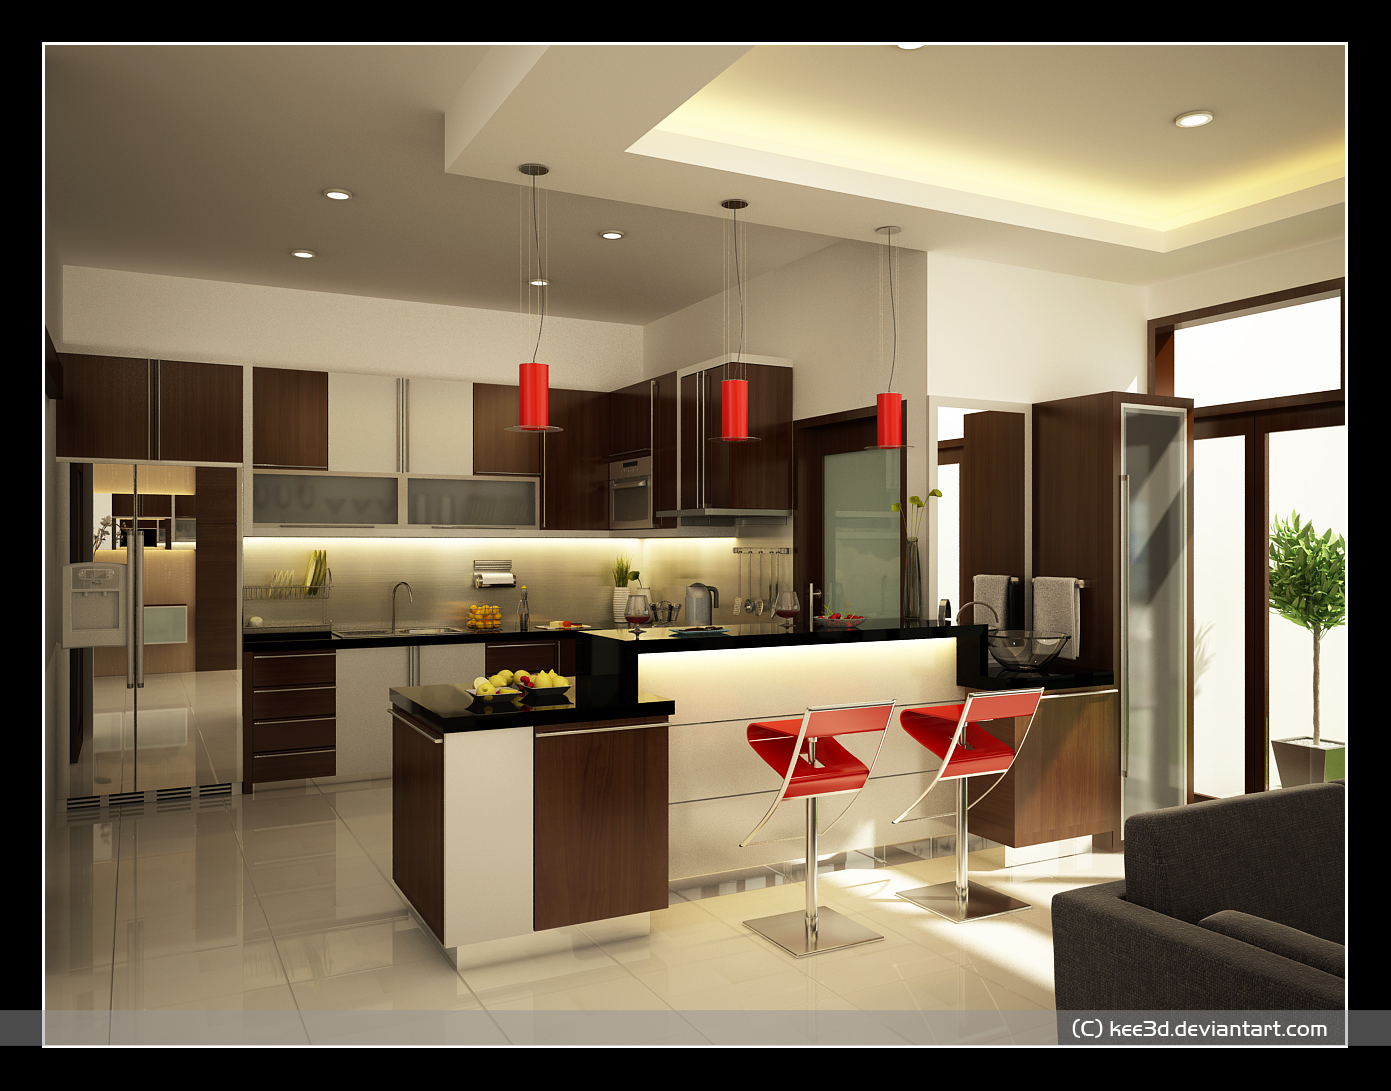 Home Interior Design & Decor: Kitchen Design Ideas – Set 2